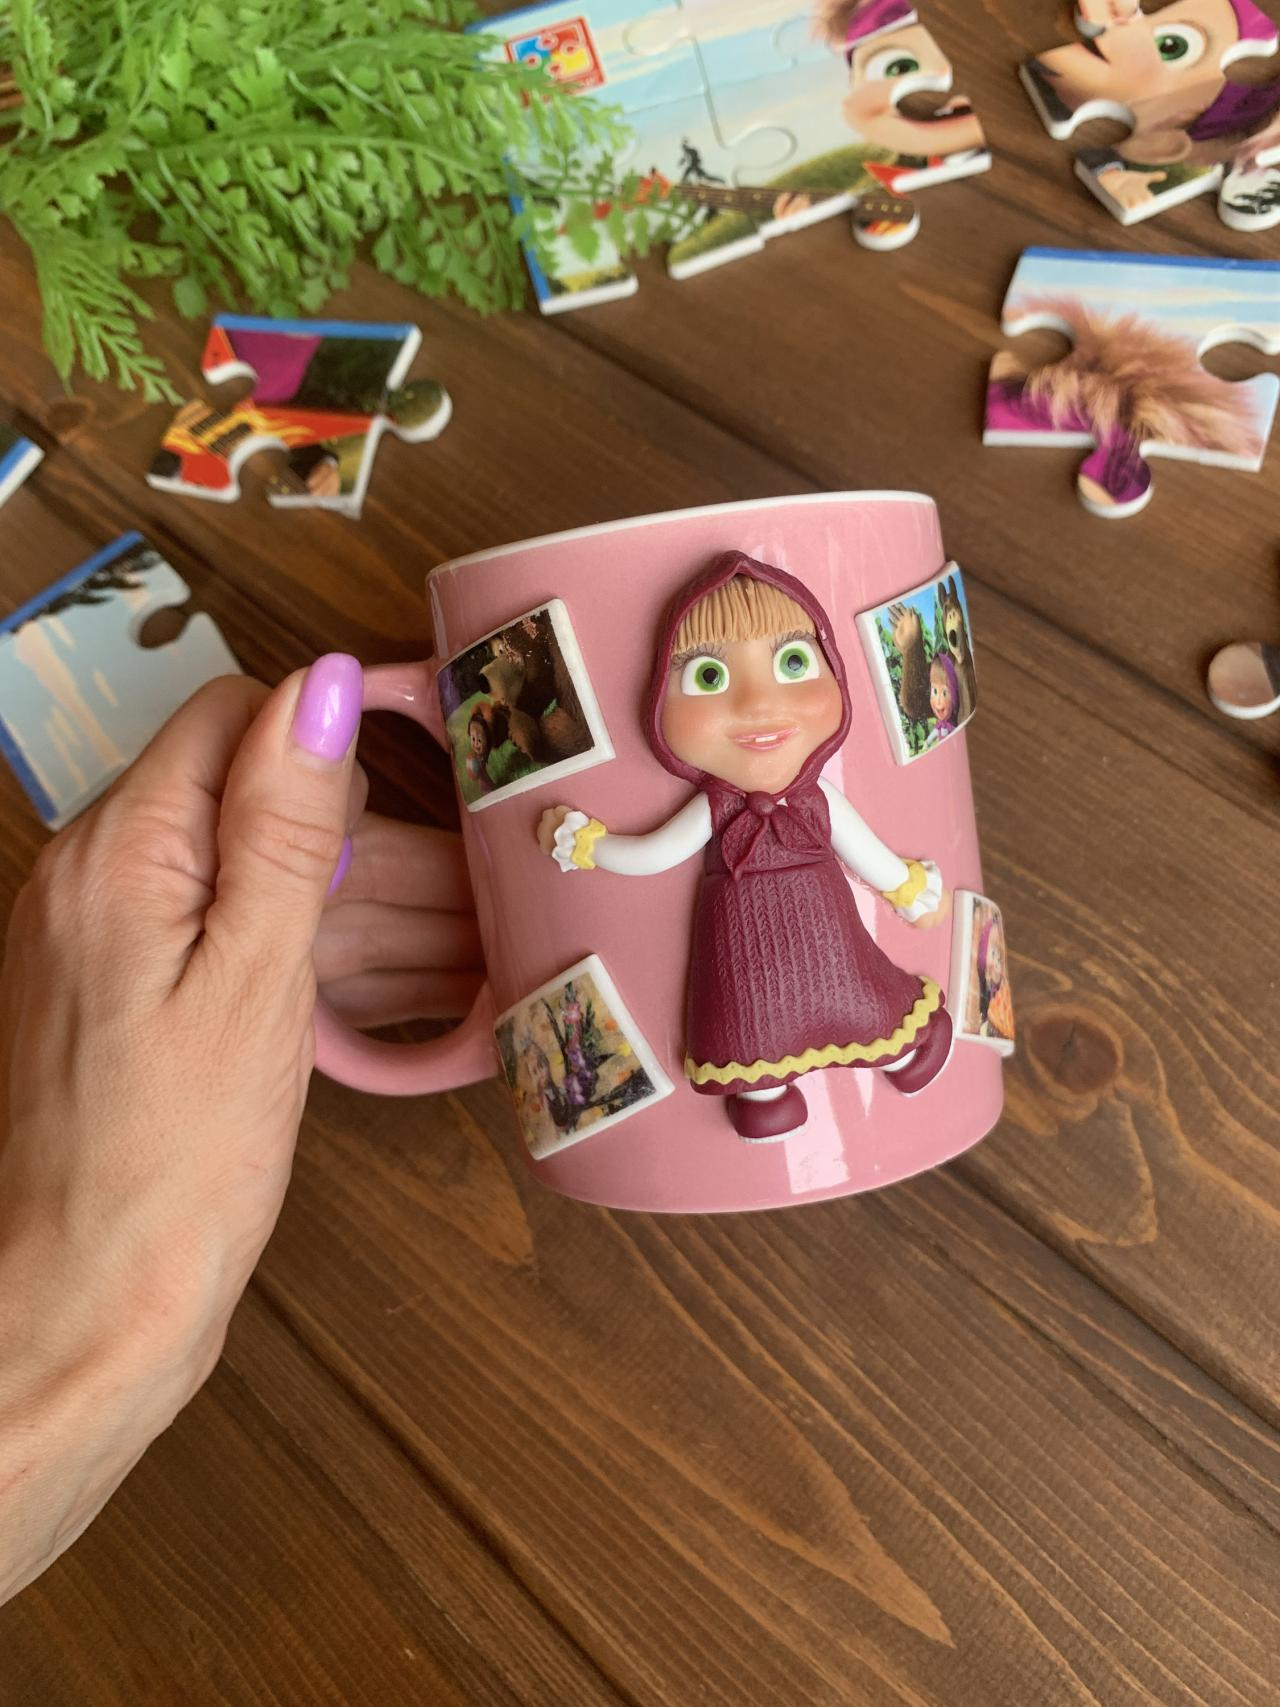 Mug Masha and the Bear, Masha the Bear for his birthday, Gift for a child, Personalized cup for children, Masha and the Bear, Pink